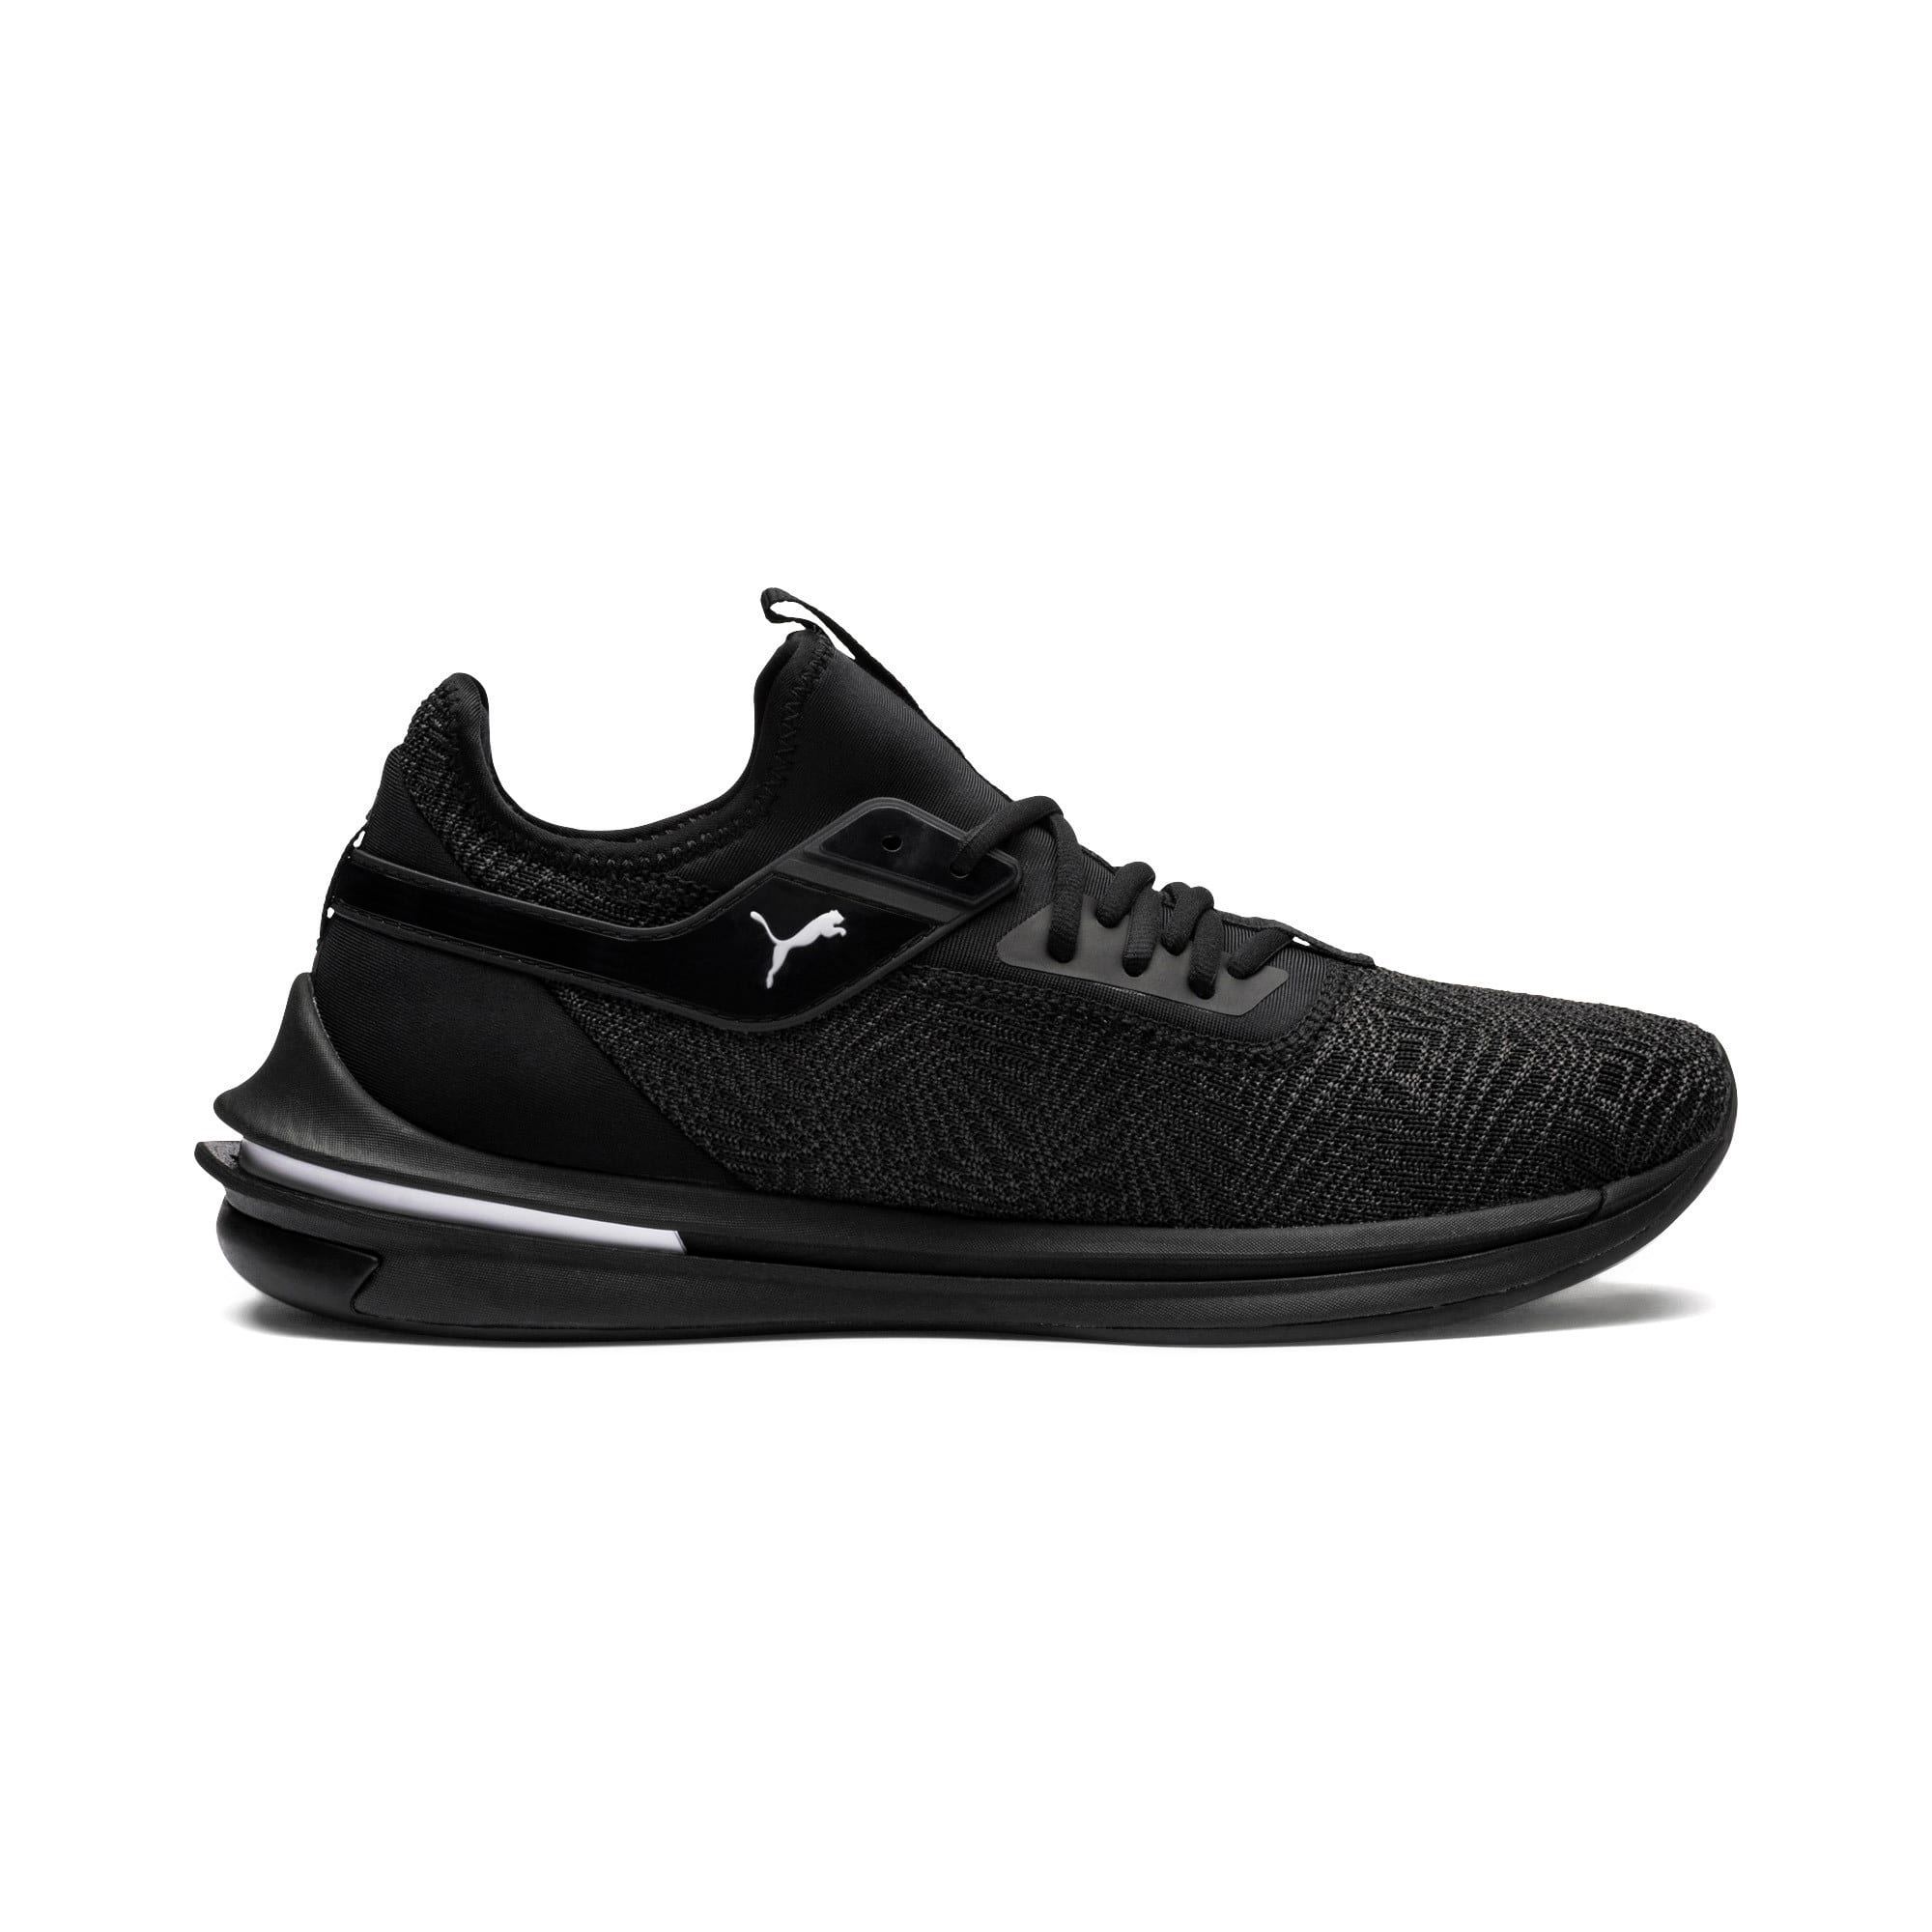 Thumbnail 5 of IGNITE Limitless SR-71 Running Shoes, Puma Black, medium-IND